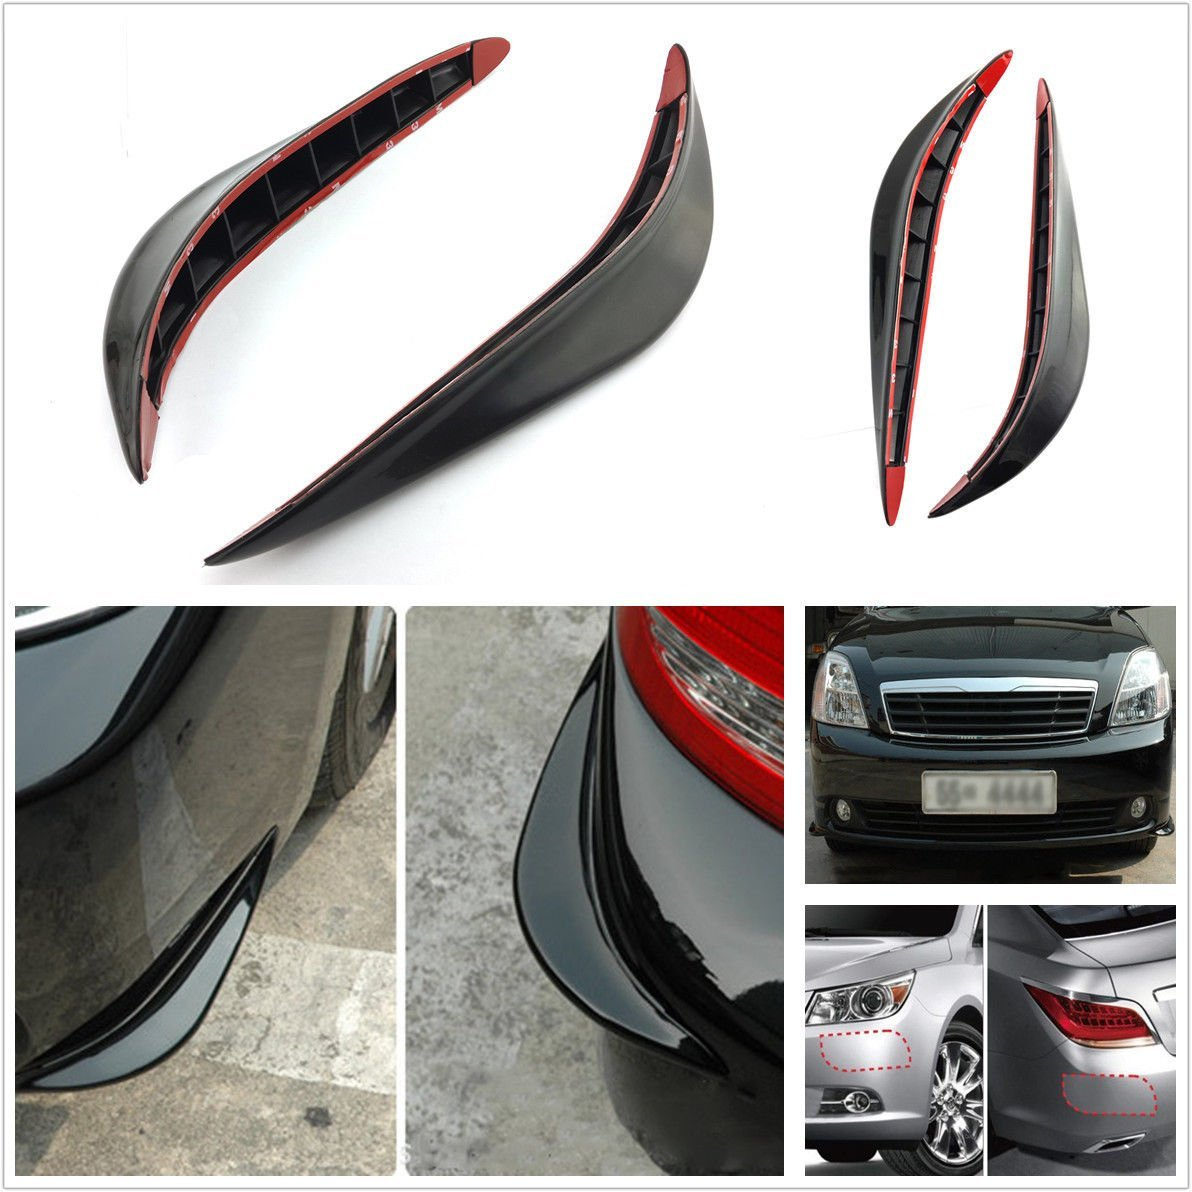 Universal Car Mudflaps Front Rear Renault Logo Wind Zoe Clio Mud Flap Guard